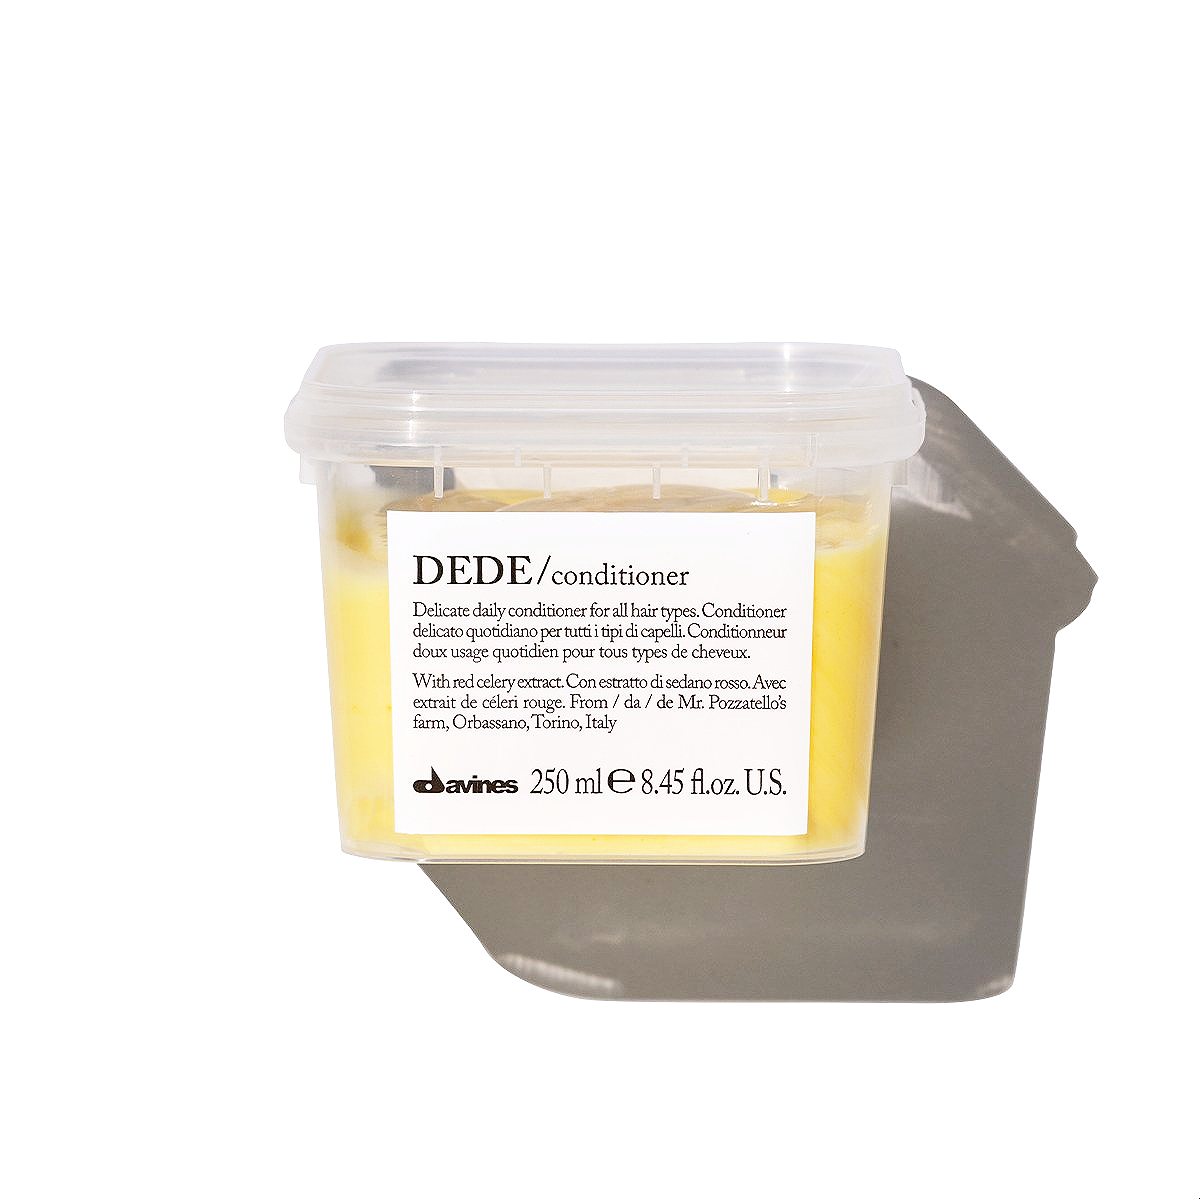 DEDE Conditioner - Brush Salon